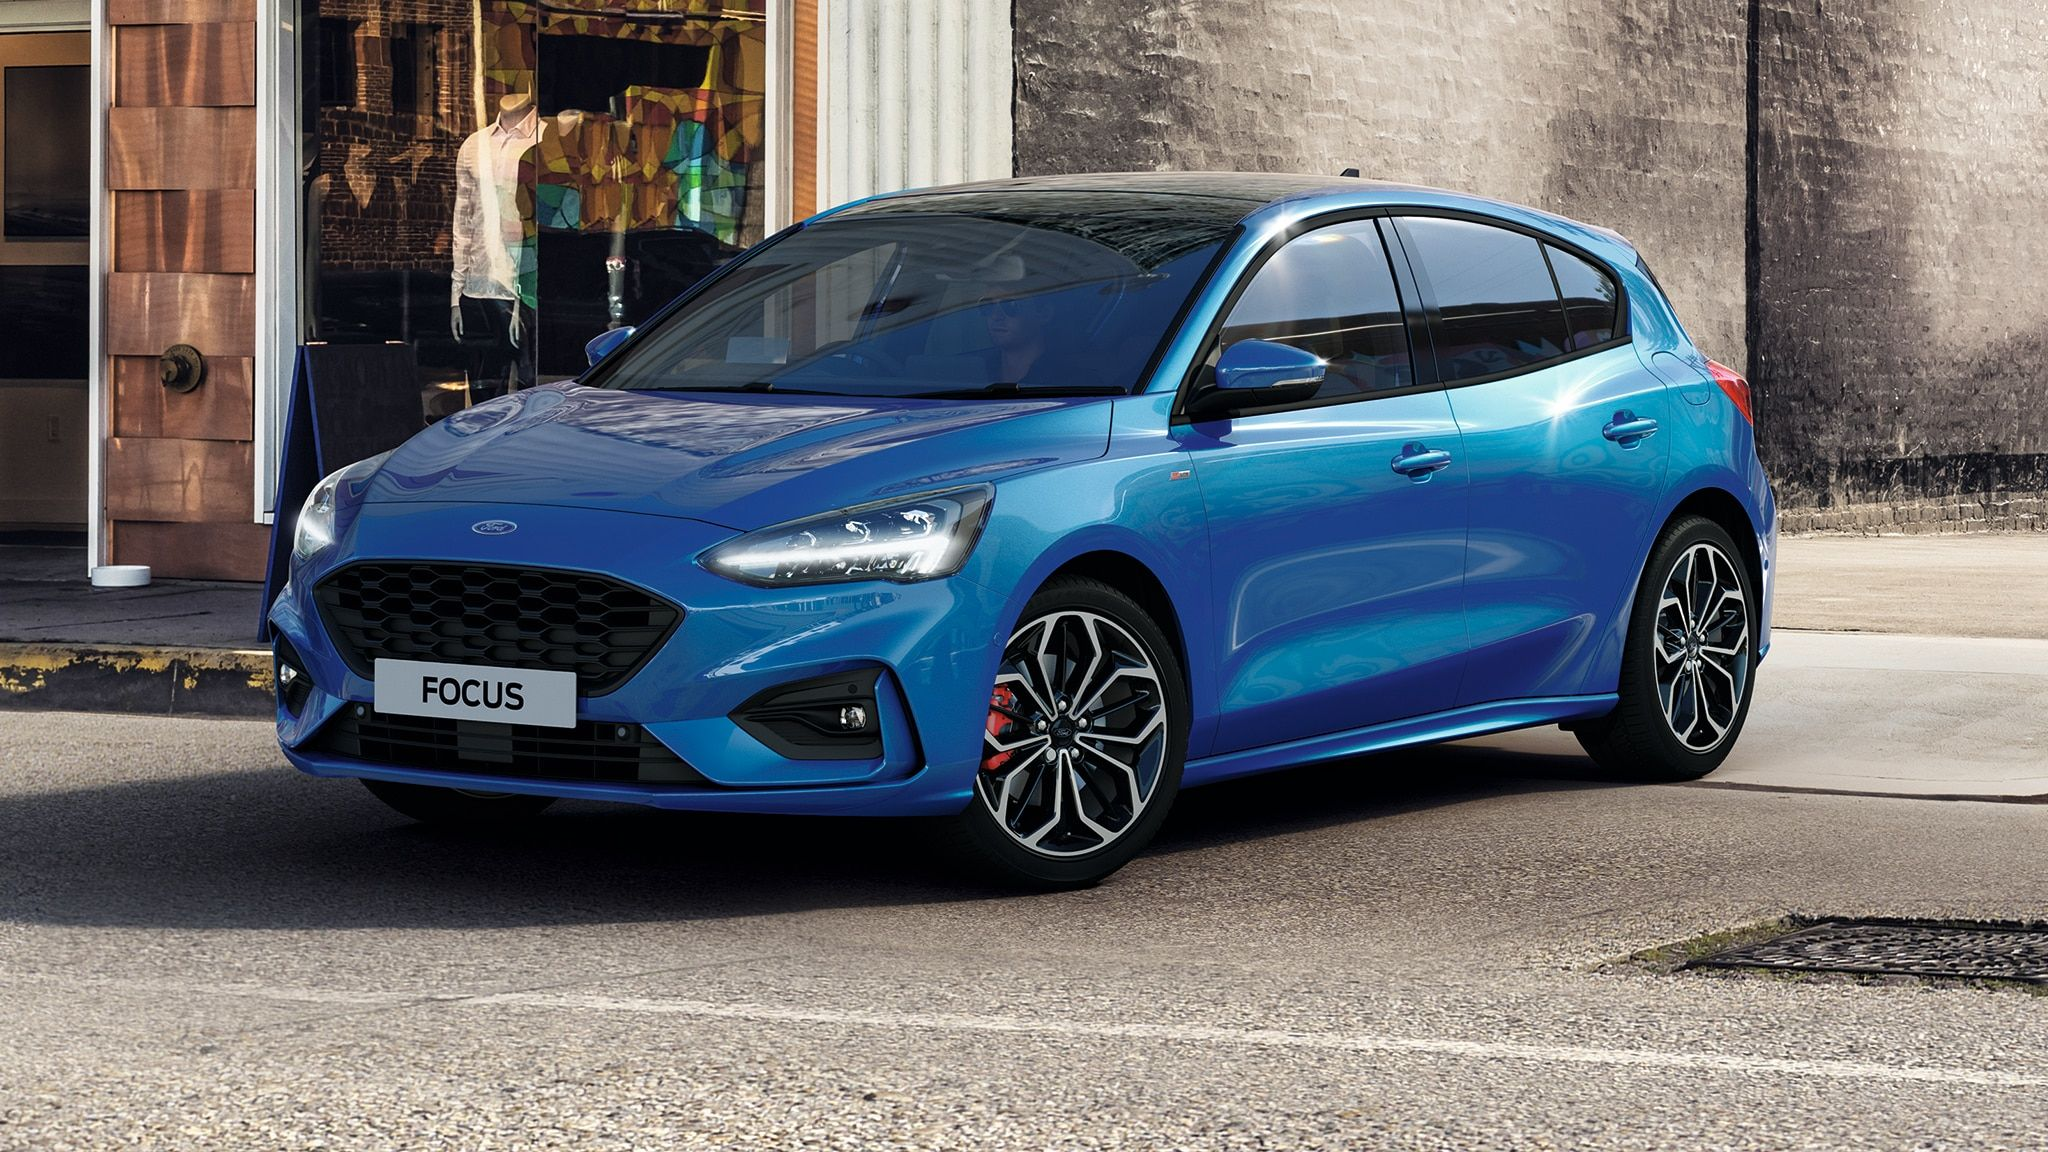 Ford Focus Adds a MildHybrid 1.0Liter Powertrain for